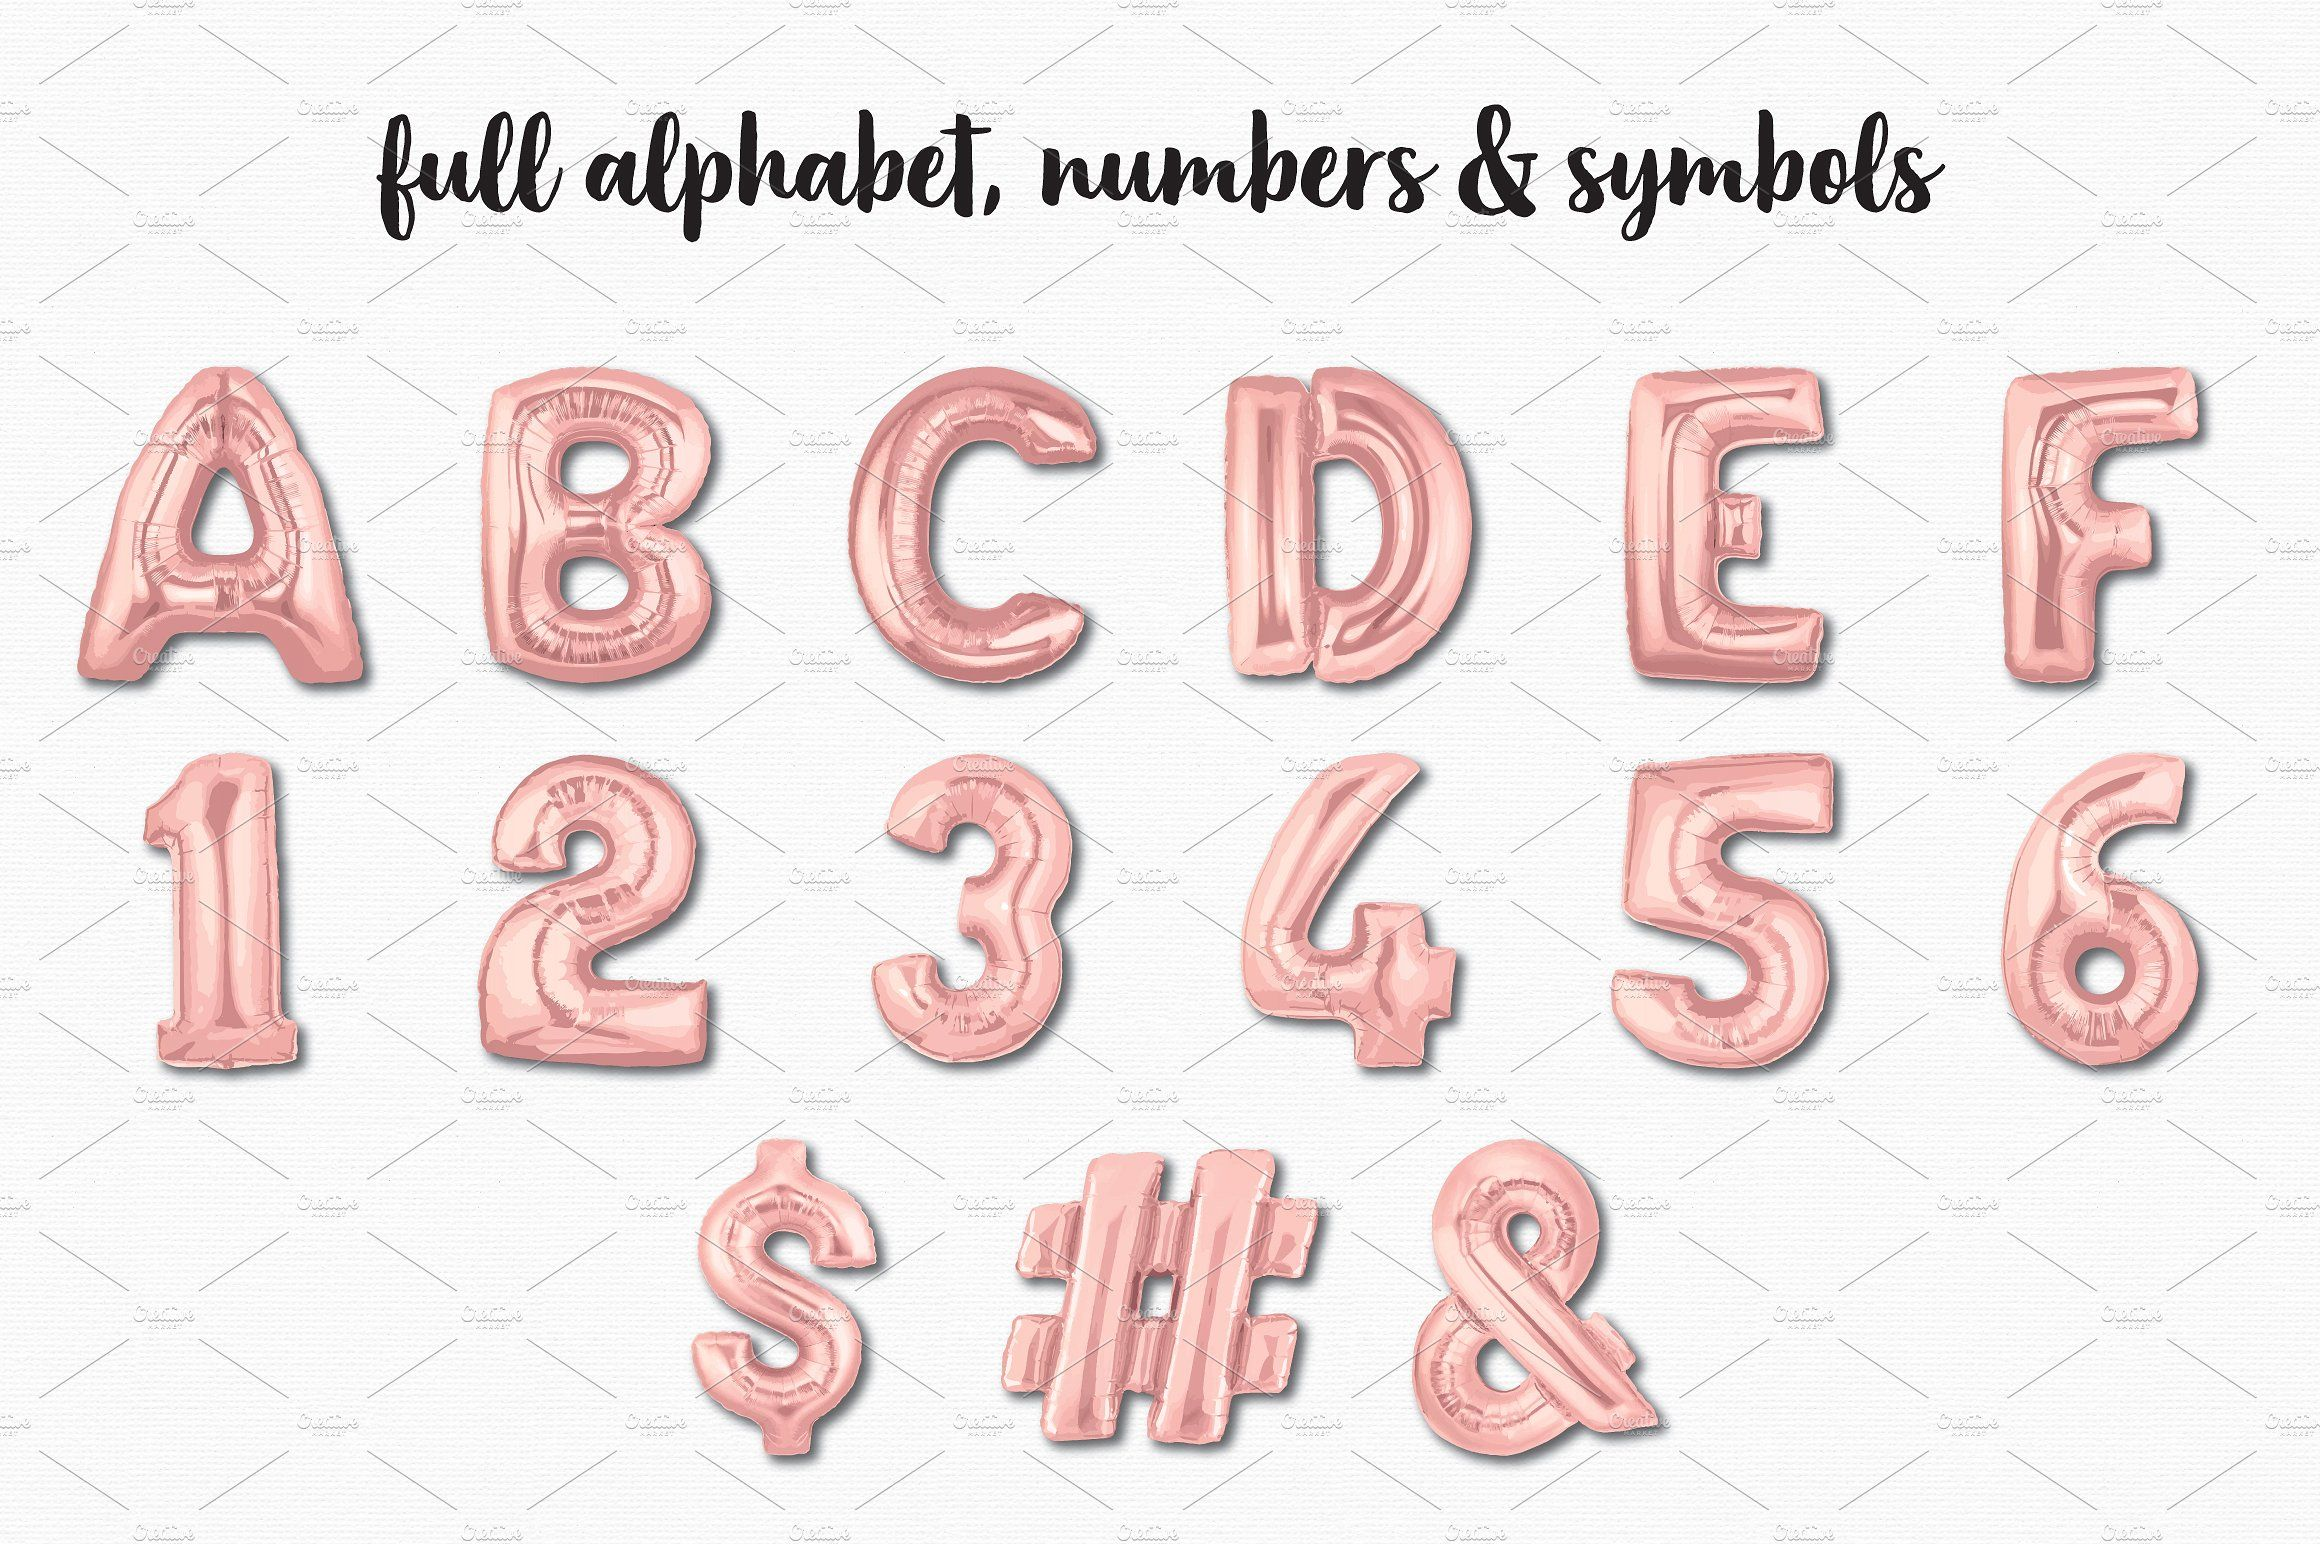 Foil balloon letters clipart clip royalty free library Rose Gold Foil Balloon Bundle #popular#super#numeric#alpha ... clip royalty free library